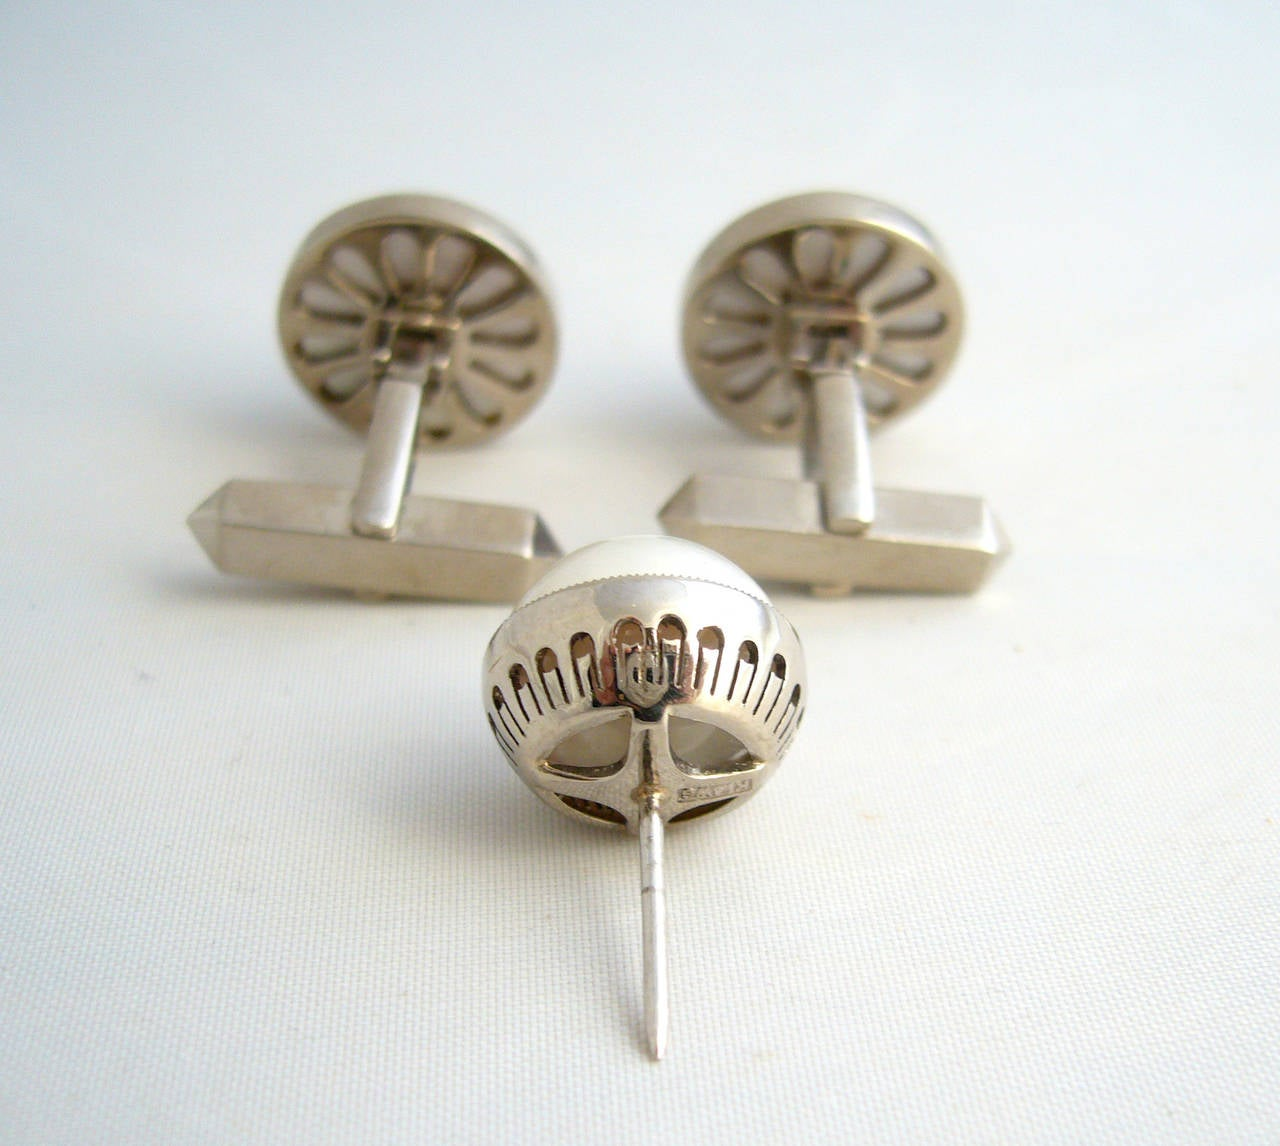 Mabé Pearl 14k White Gold Modernist Cufflinks Tie Tack Set In Excellent Condition For Sale In Los Angeles, CA